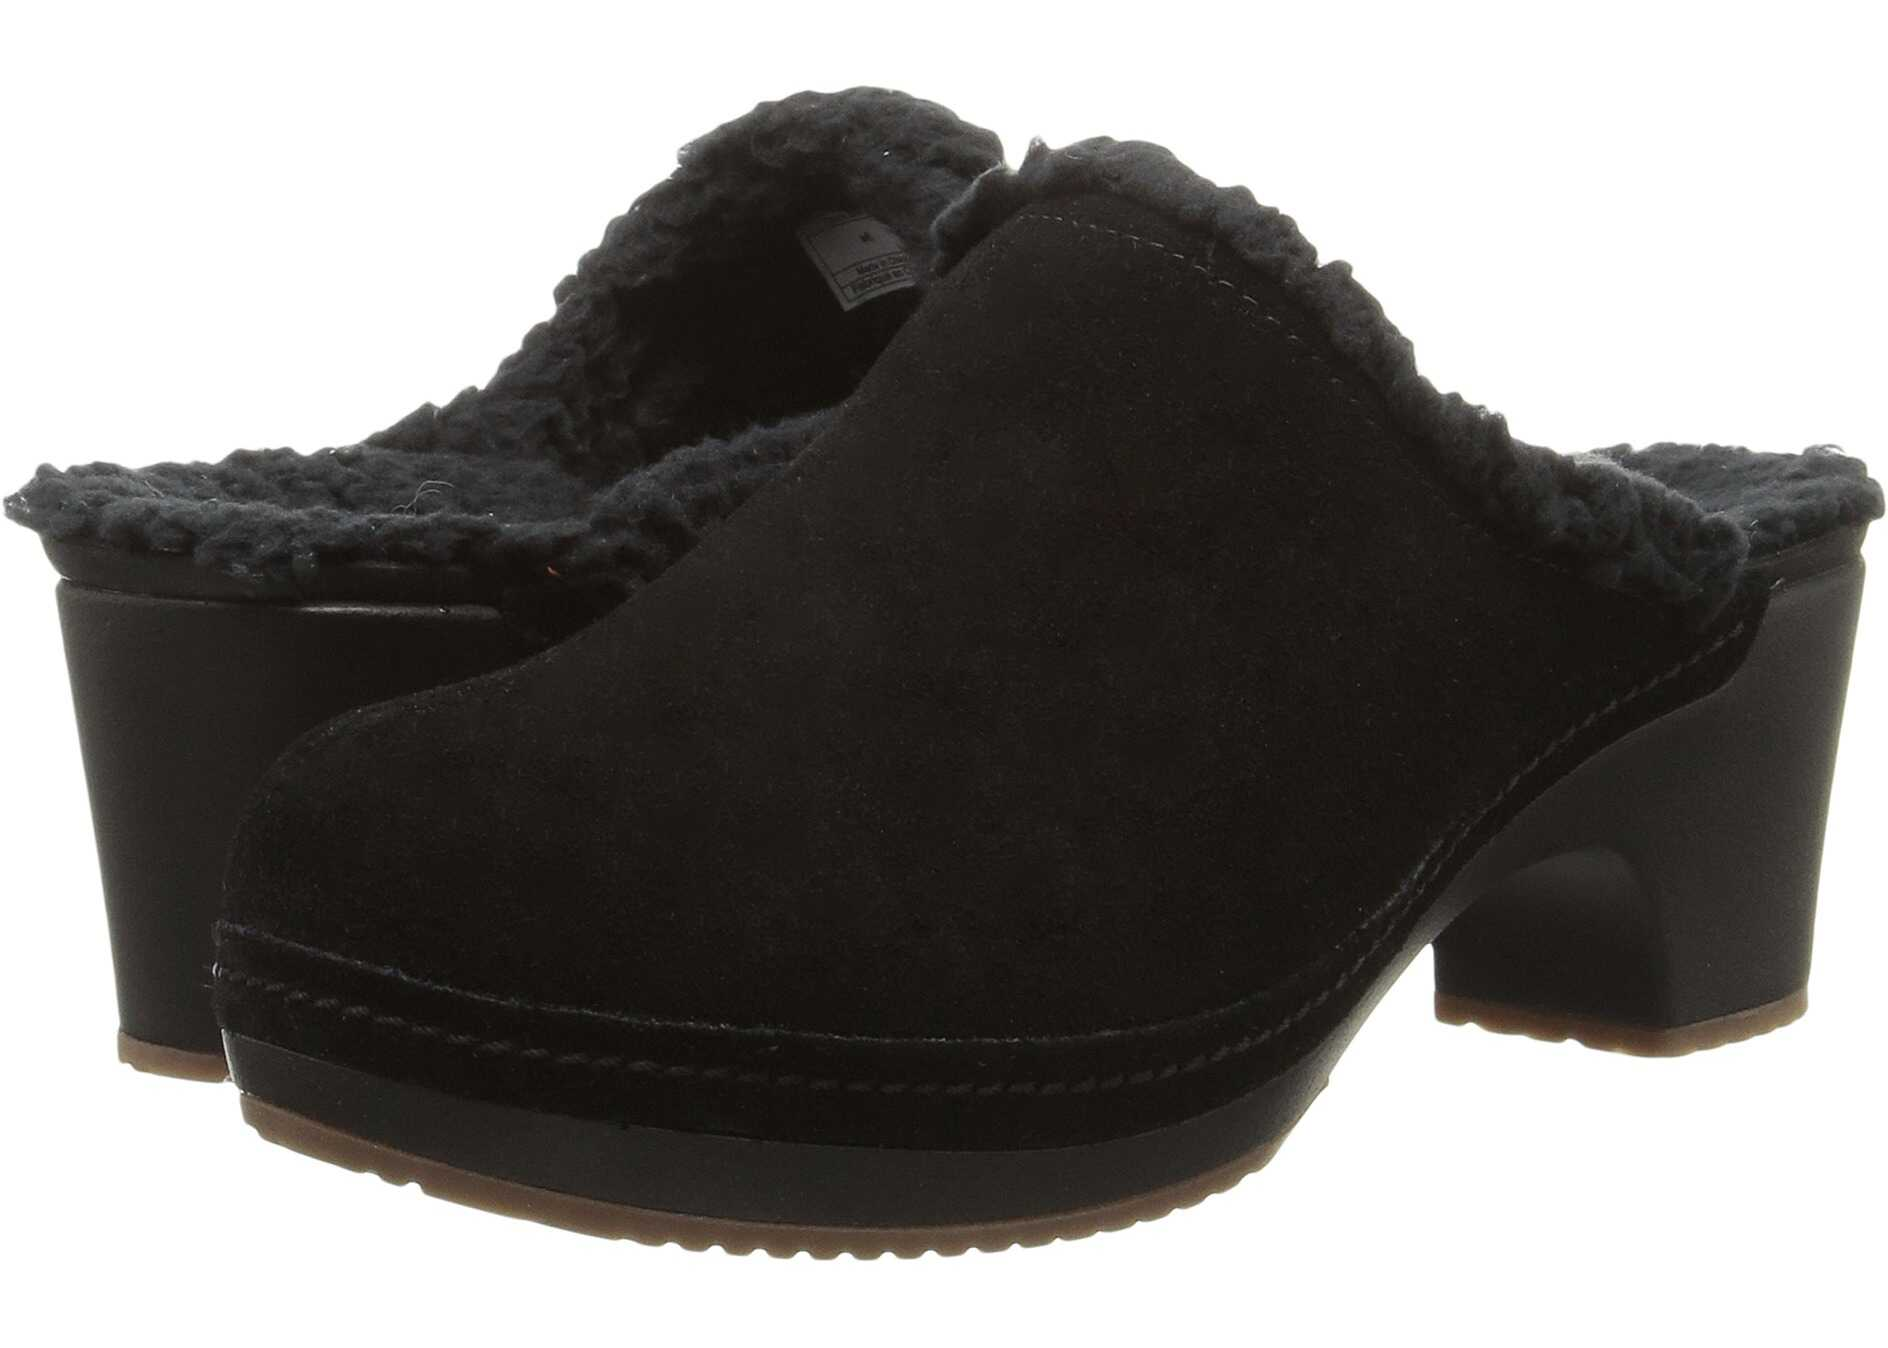 Crocs Sarah Lined Clog Black